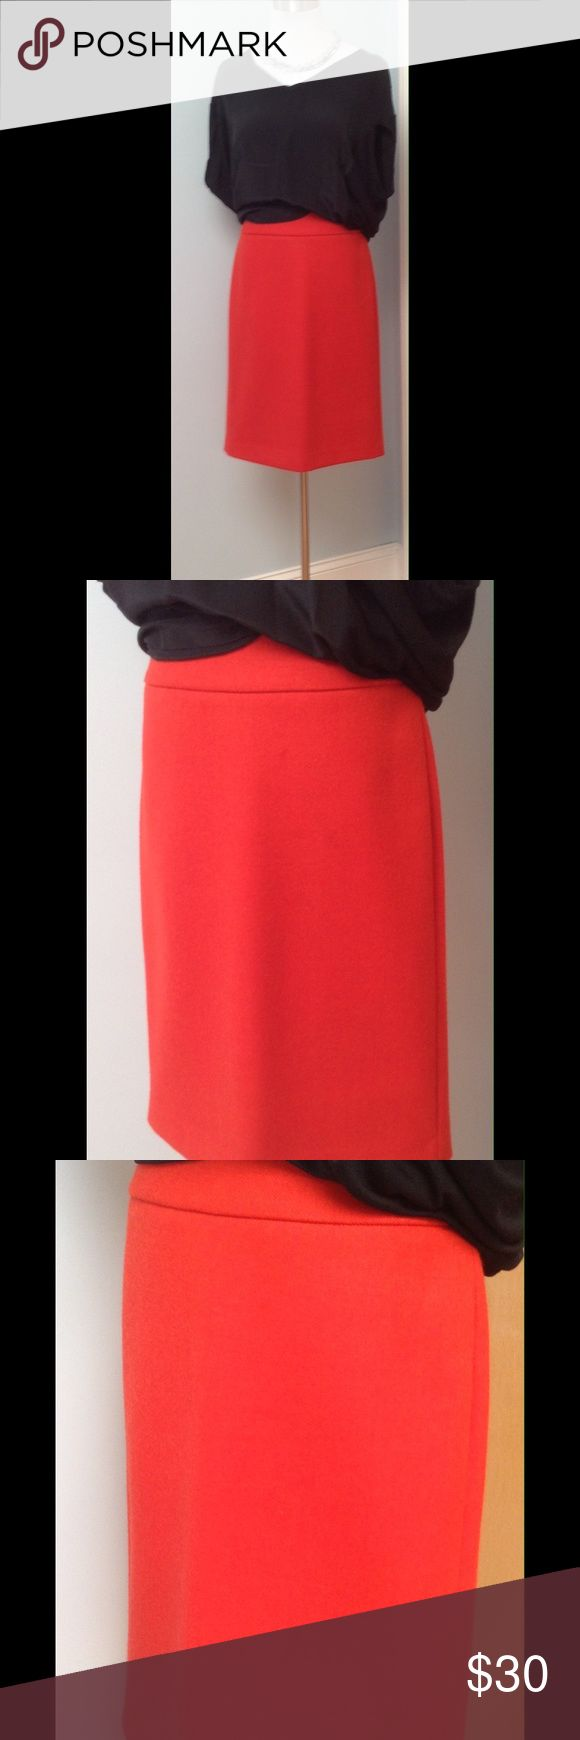 J. CREW CLASSIC WOOL PENCIL TOMATO RED SZ 2 Gorgeous wool pencil skirt in an eye popping red, a bit too bright for my conservative day job. In EUC dry cleaned and not worn since. warm high quality piece that will never go out of style. Smoke free home, pet friendly but no pets in closet. Please ask questions. Sorry no trades ever. J. Crew Skirts Midi